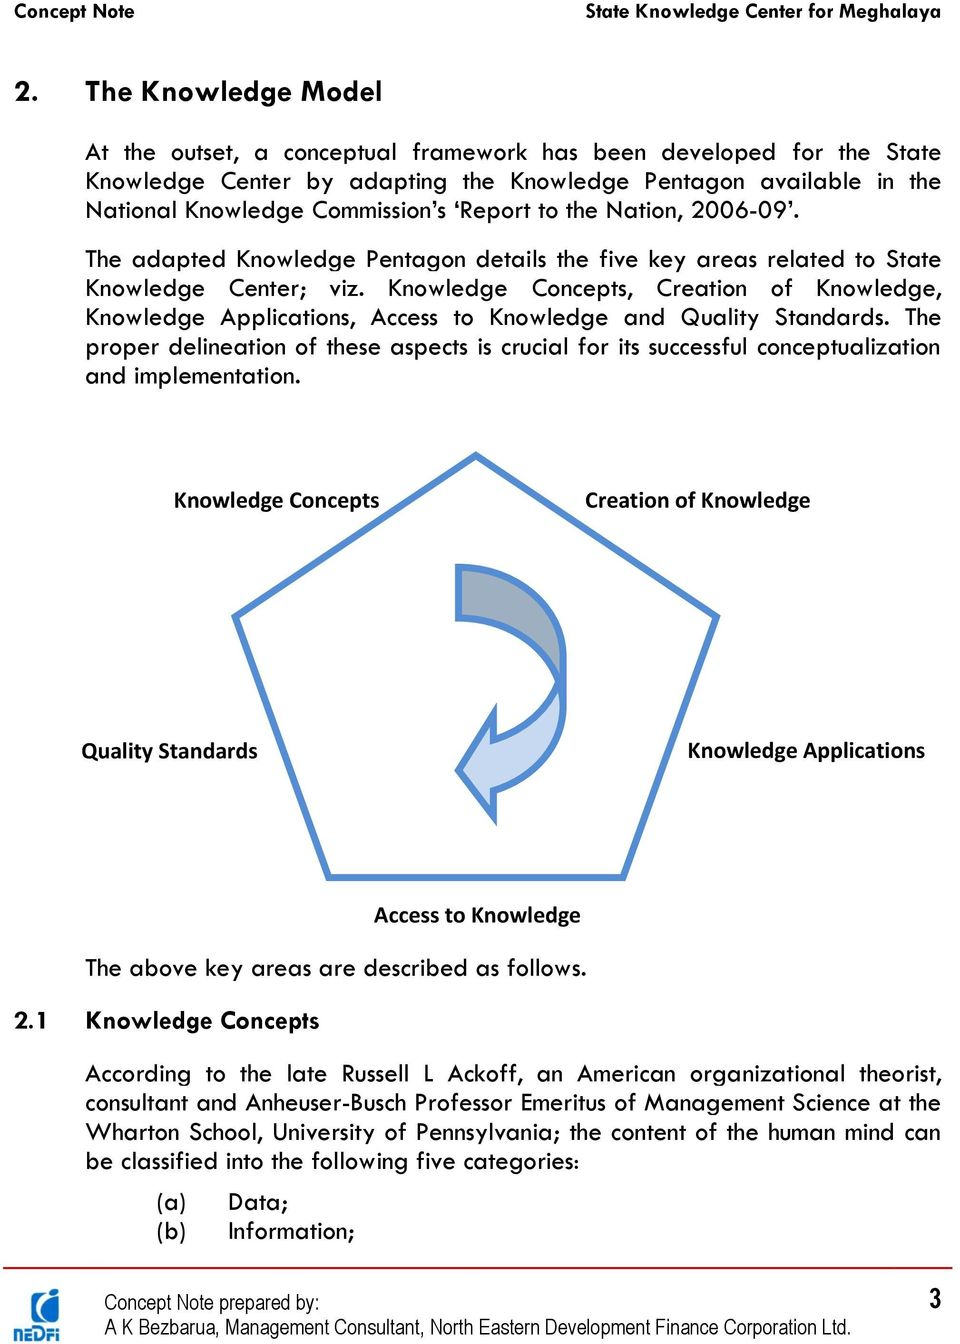 Knowledge Concepts, Creation of Knowledge, Knowledge Applications, Access to Knowledge and Quality Standards.